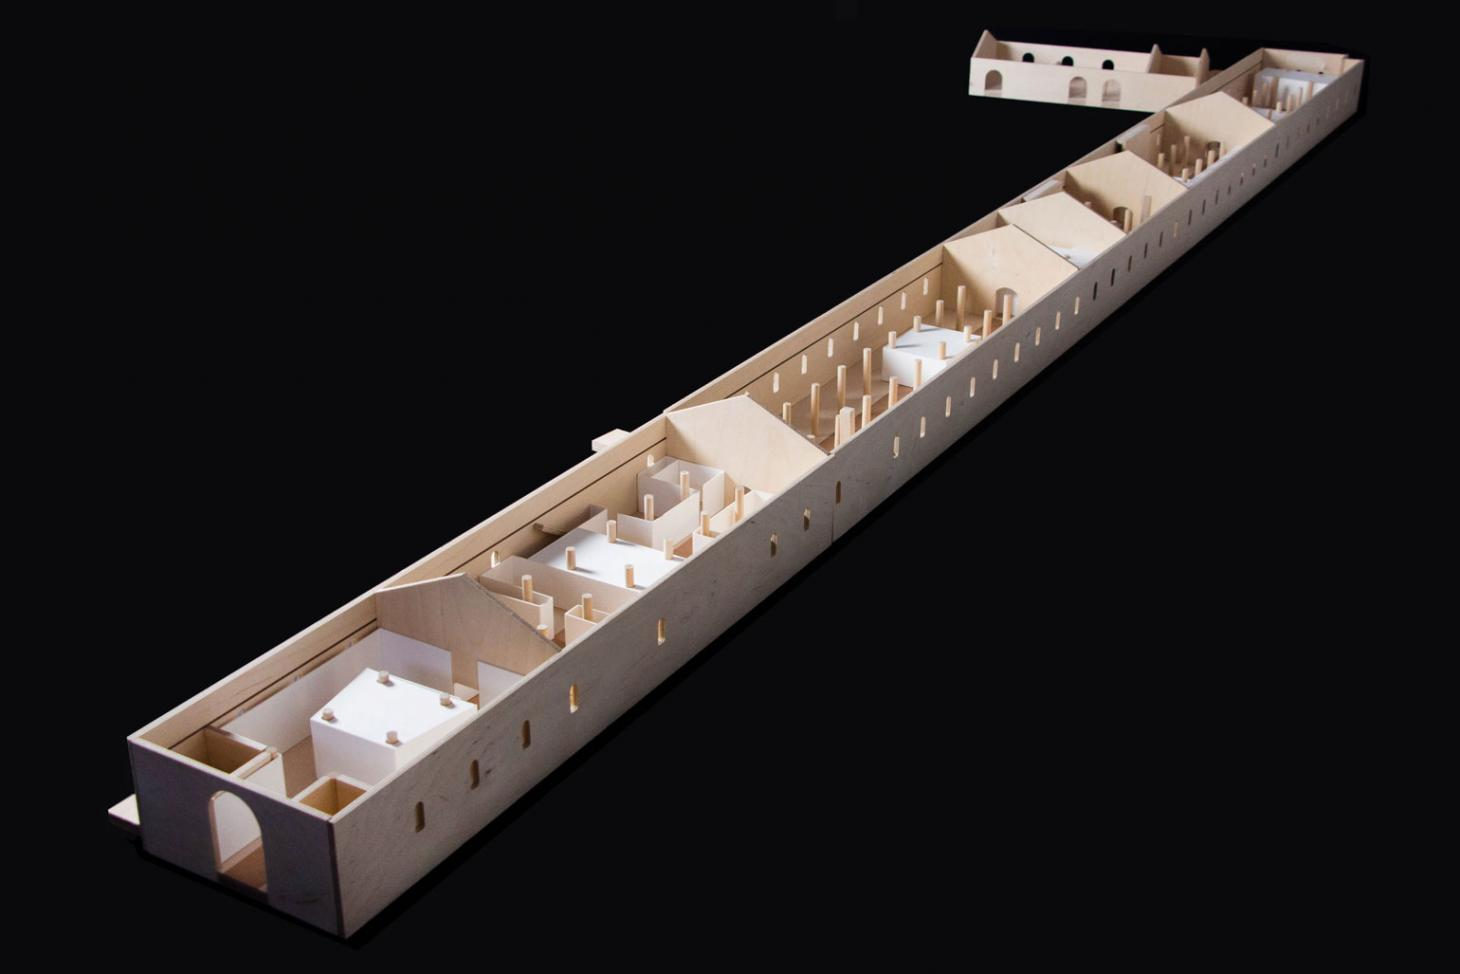 Duality shapes Delvendahl Martin Architects' exhibition design in Venice